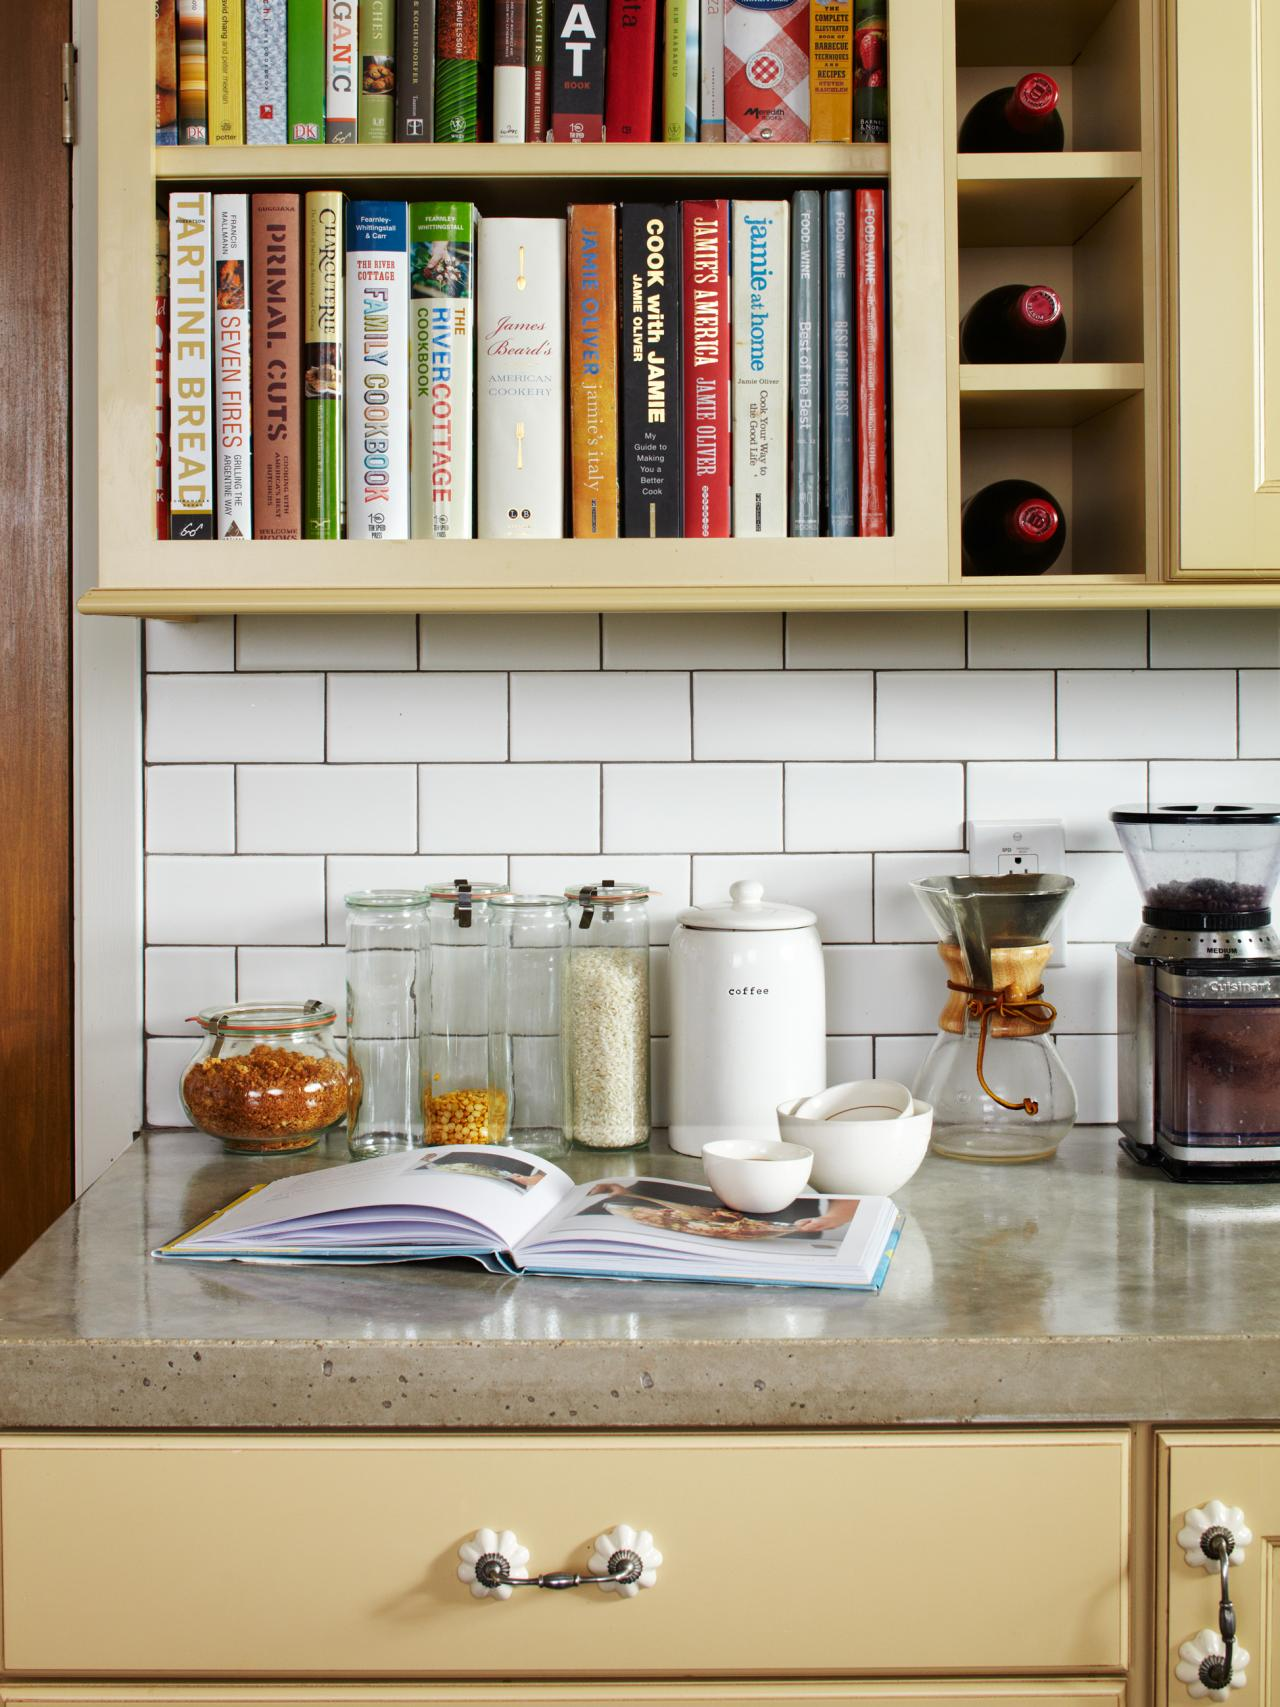 Countertop Book Display Kitchen Chronicles I 39m In Love With My Kitchen Makeover